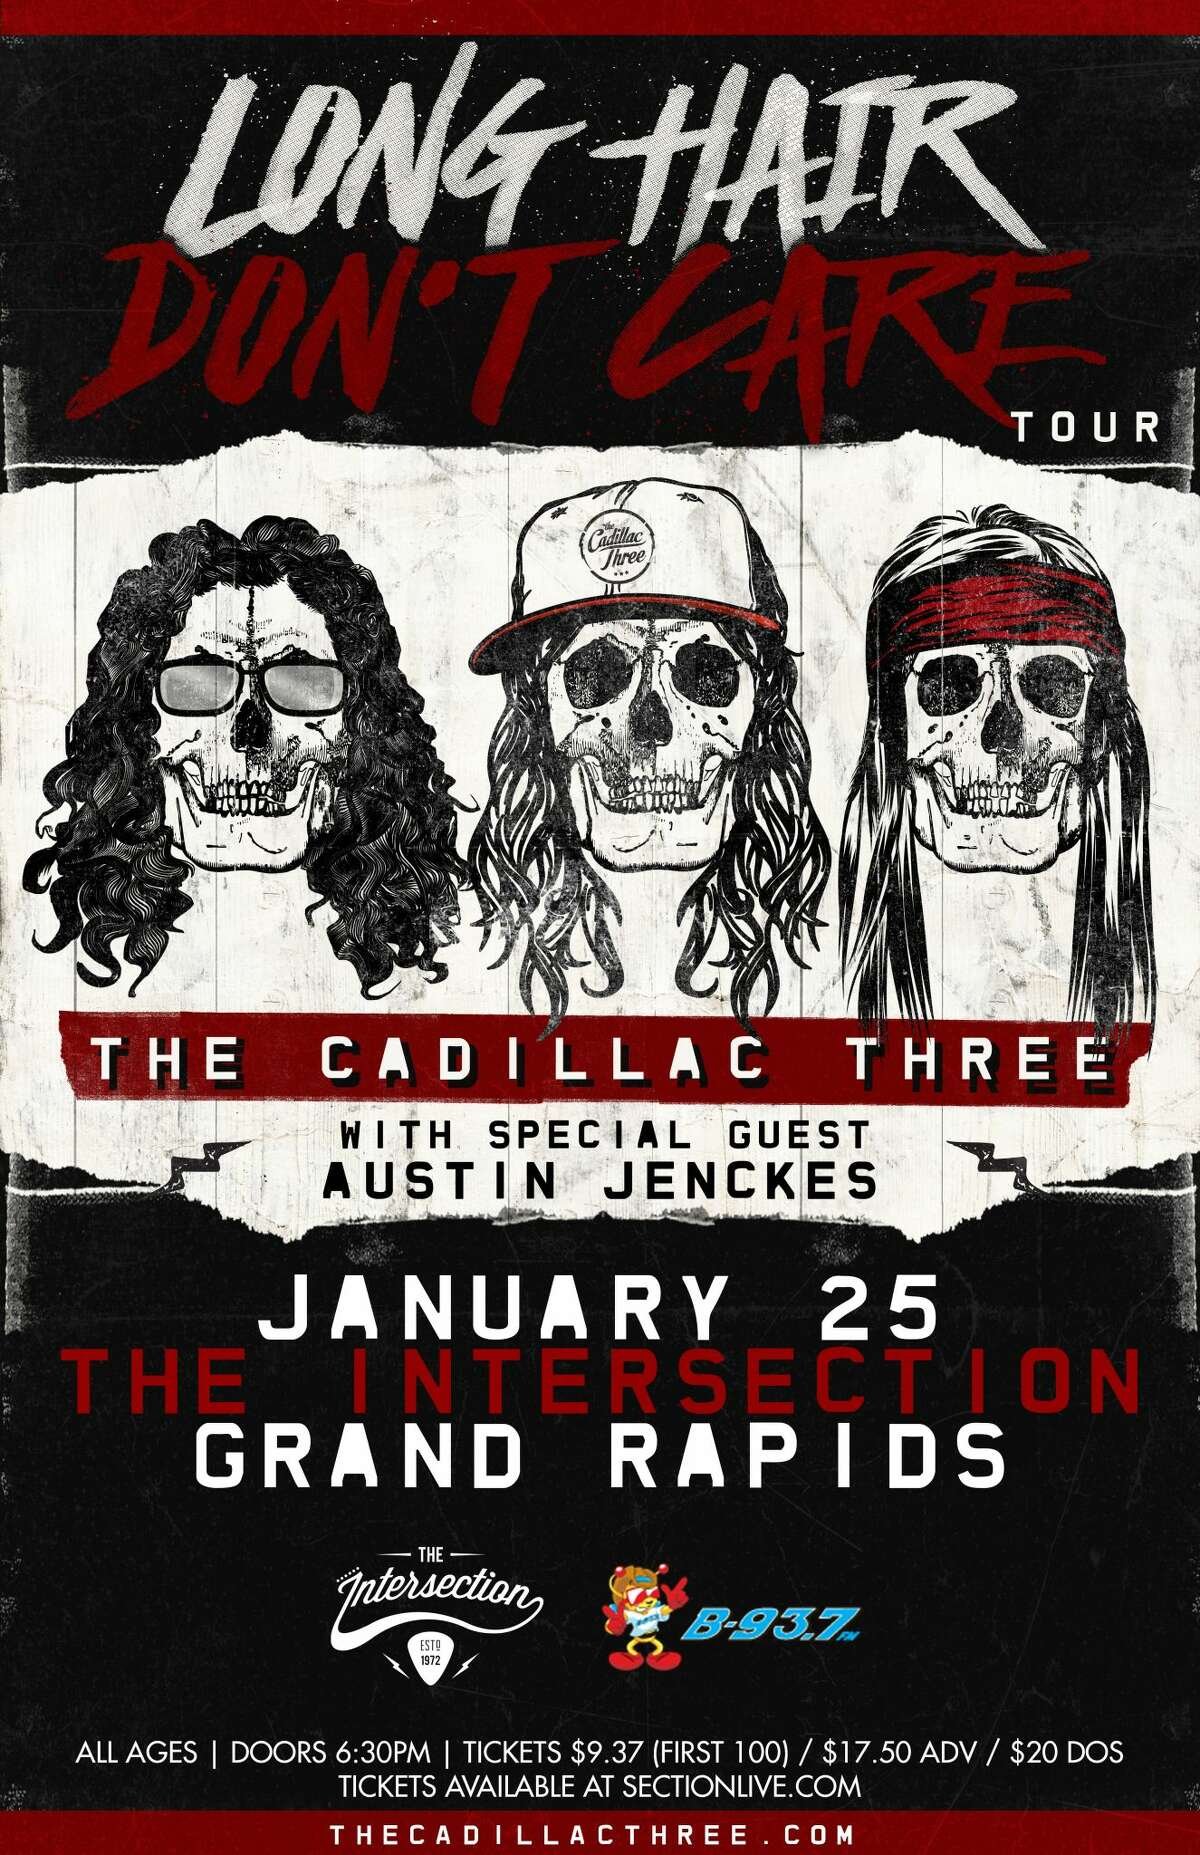 Jan. 25: The Cadillac Three, 6:30 p.m., The Intersection, Grand Rapids, www.sectionlive.com